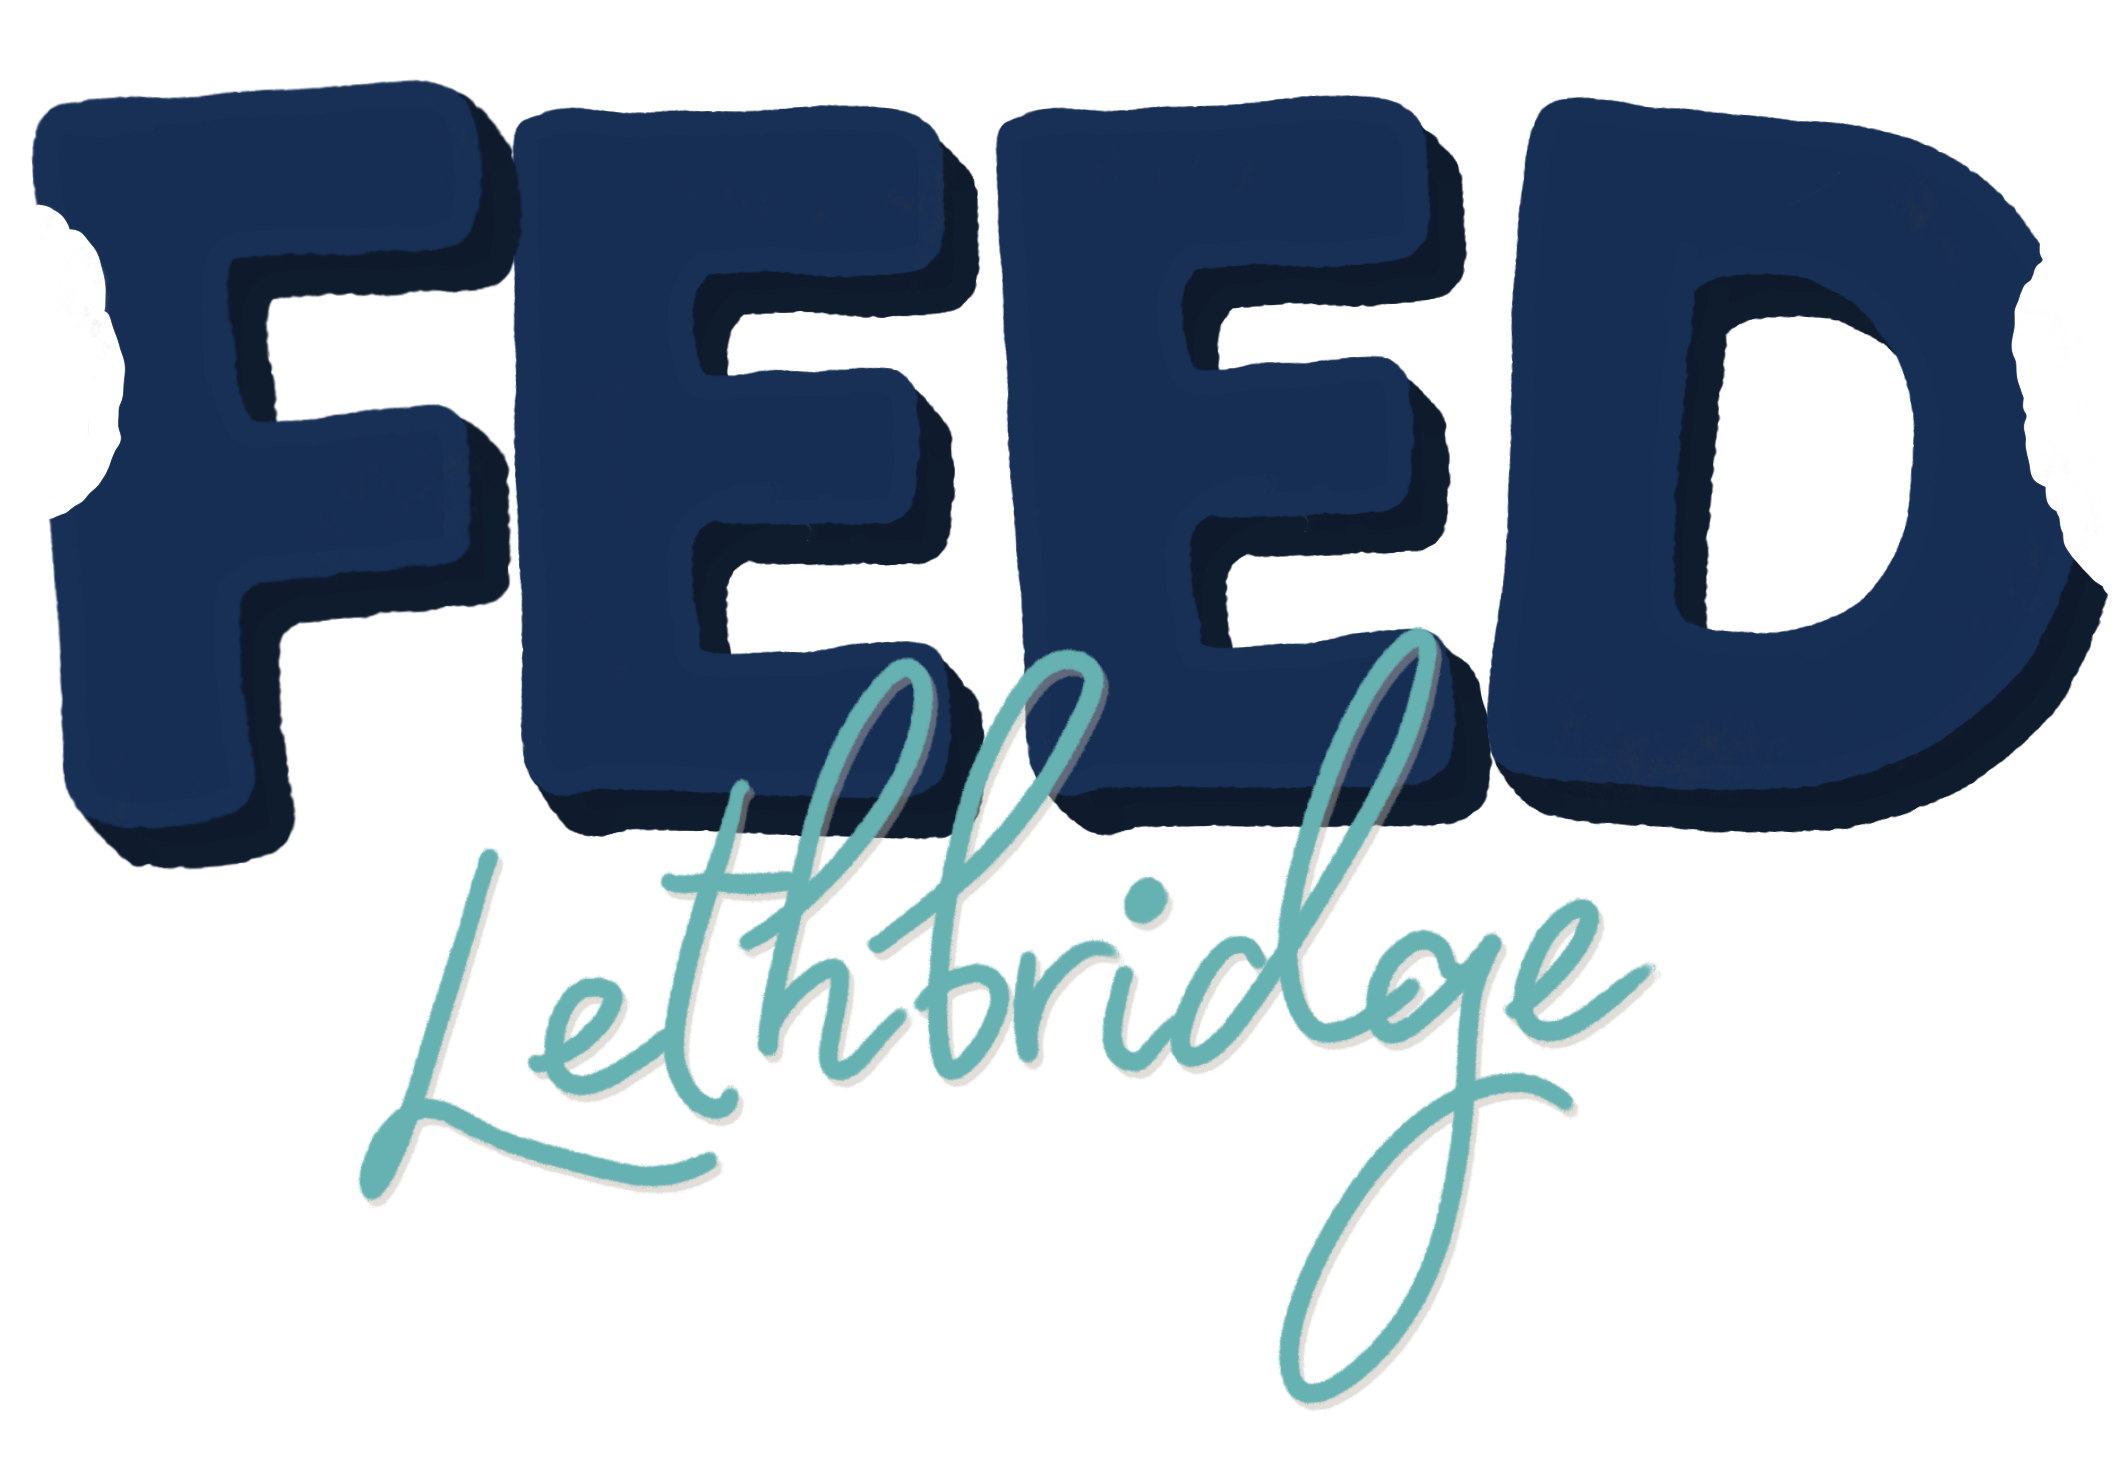 Feed Lethbridge